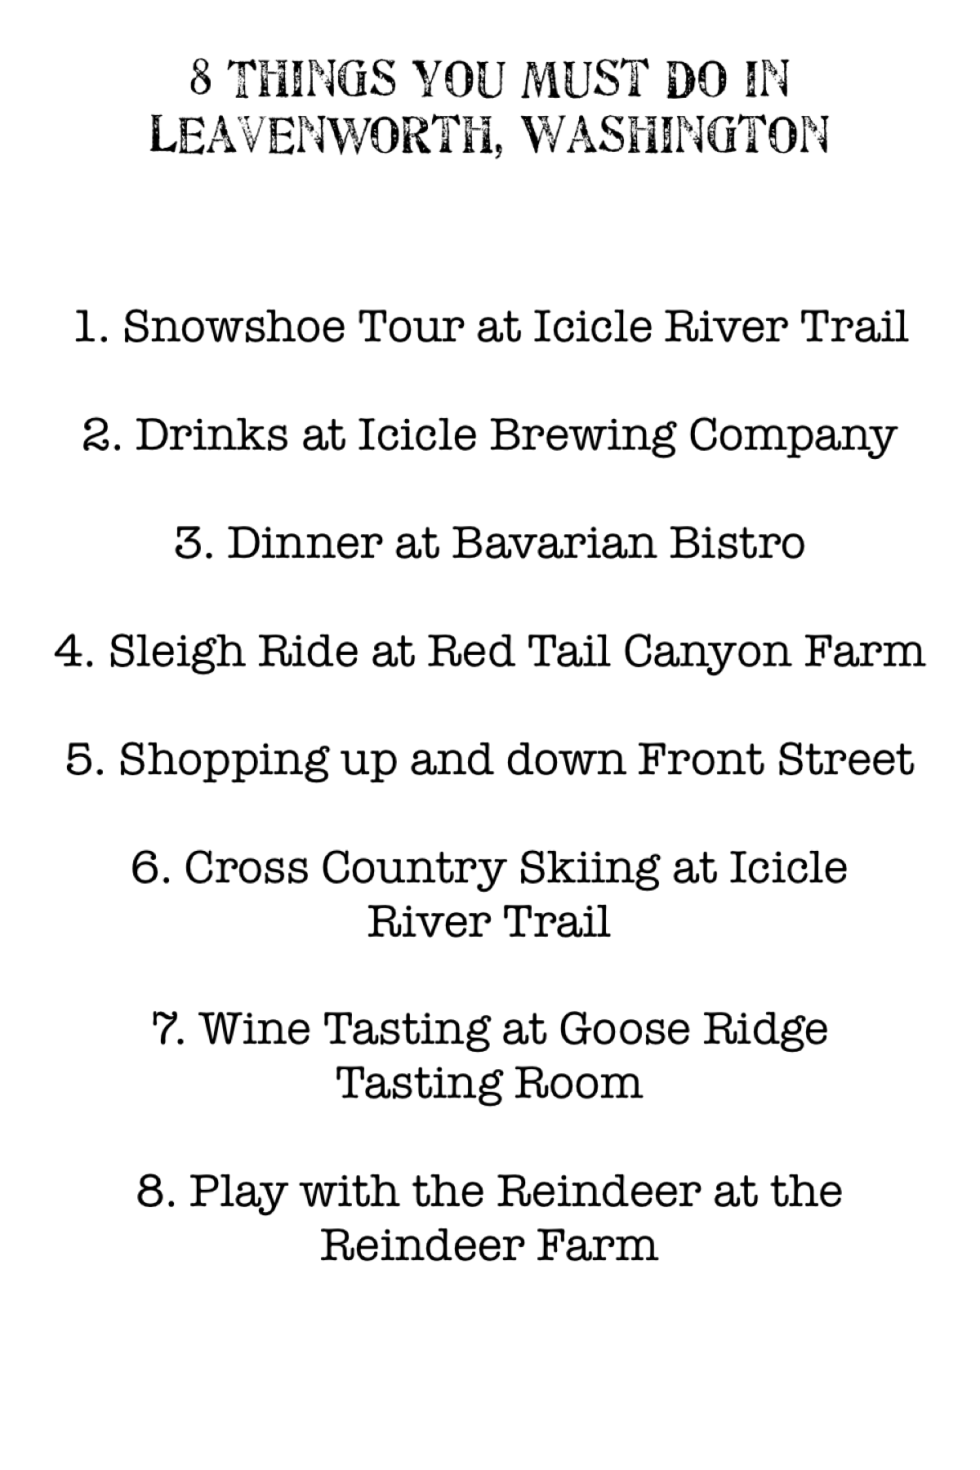 what-to-do-in-leavenworth-washington